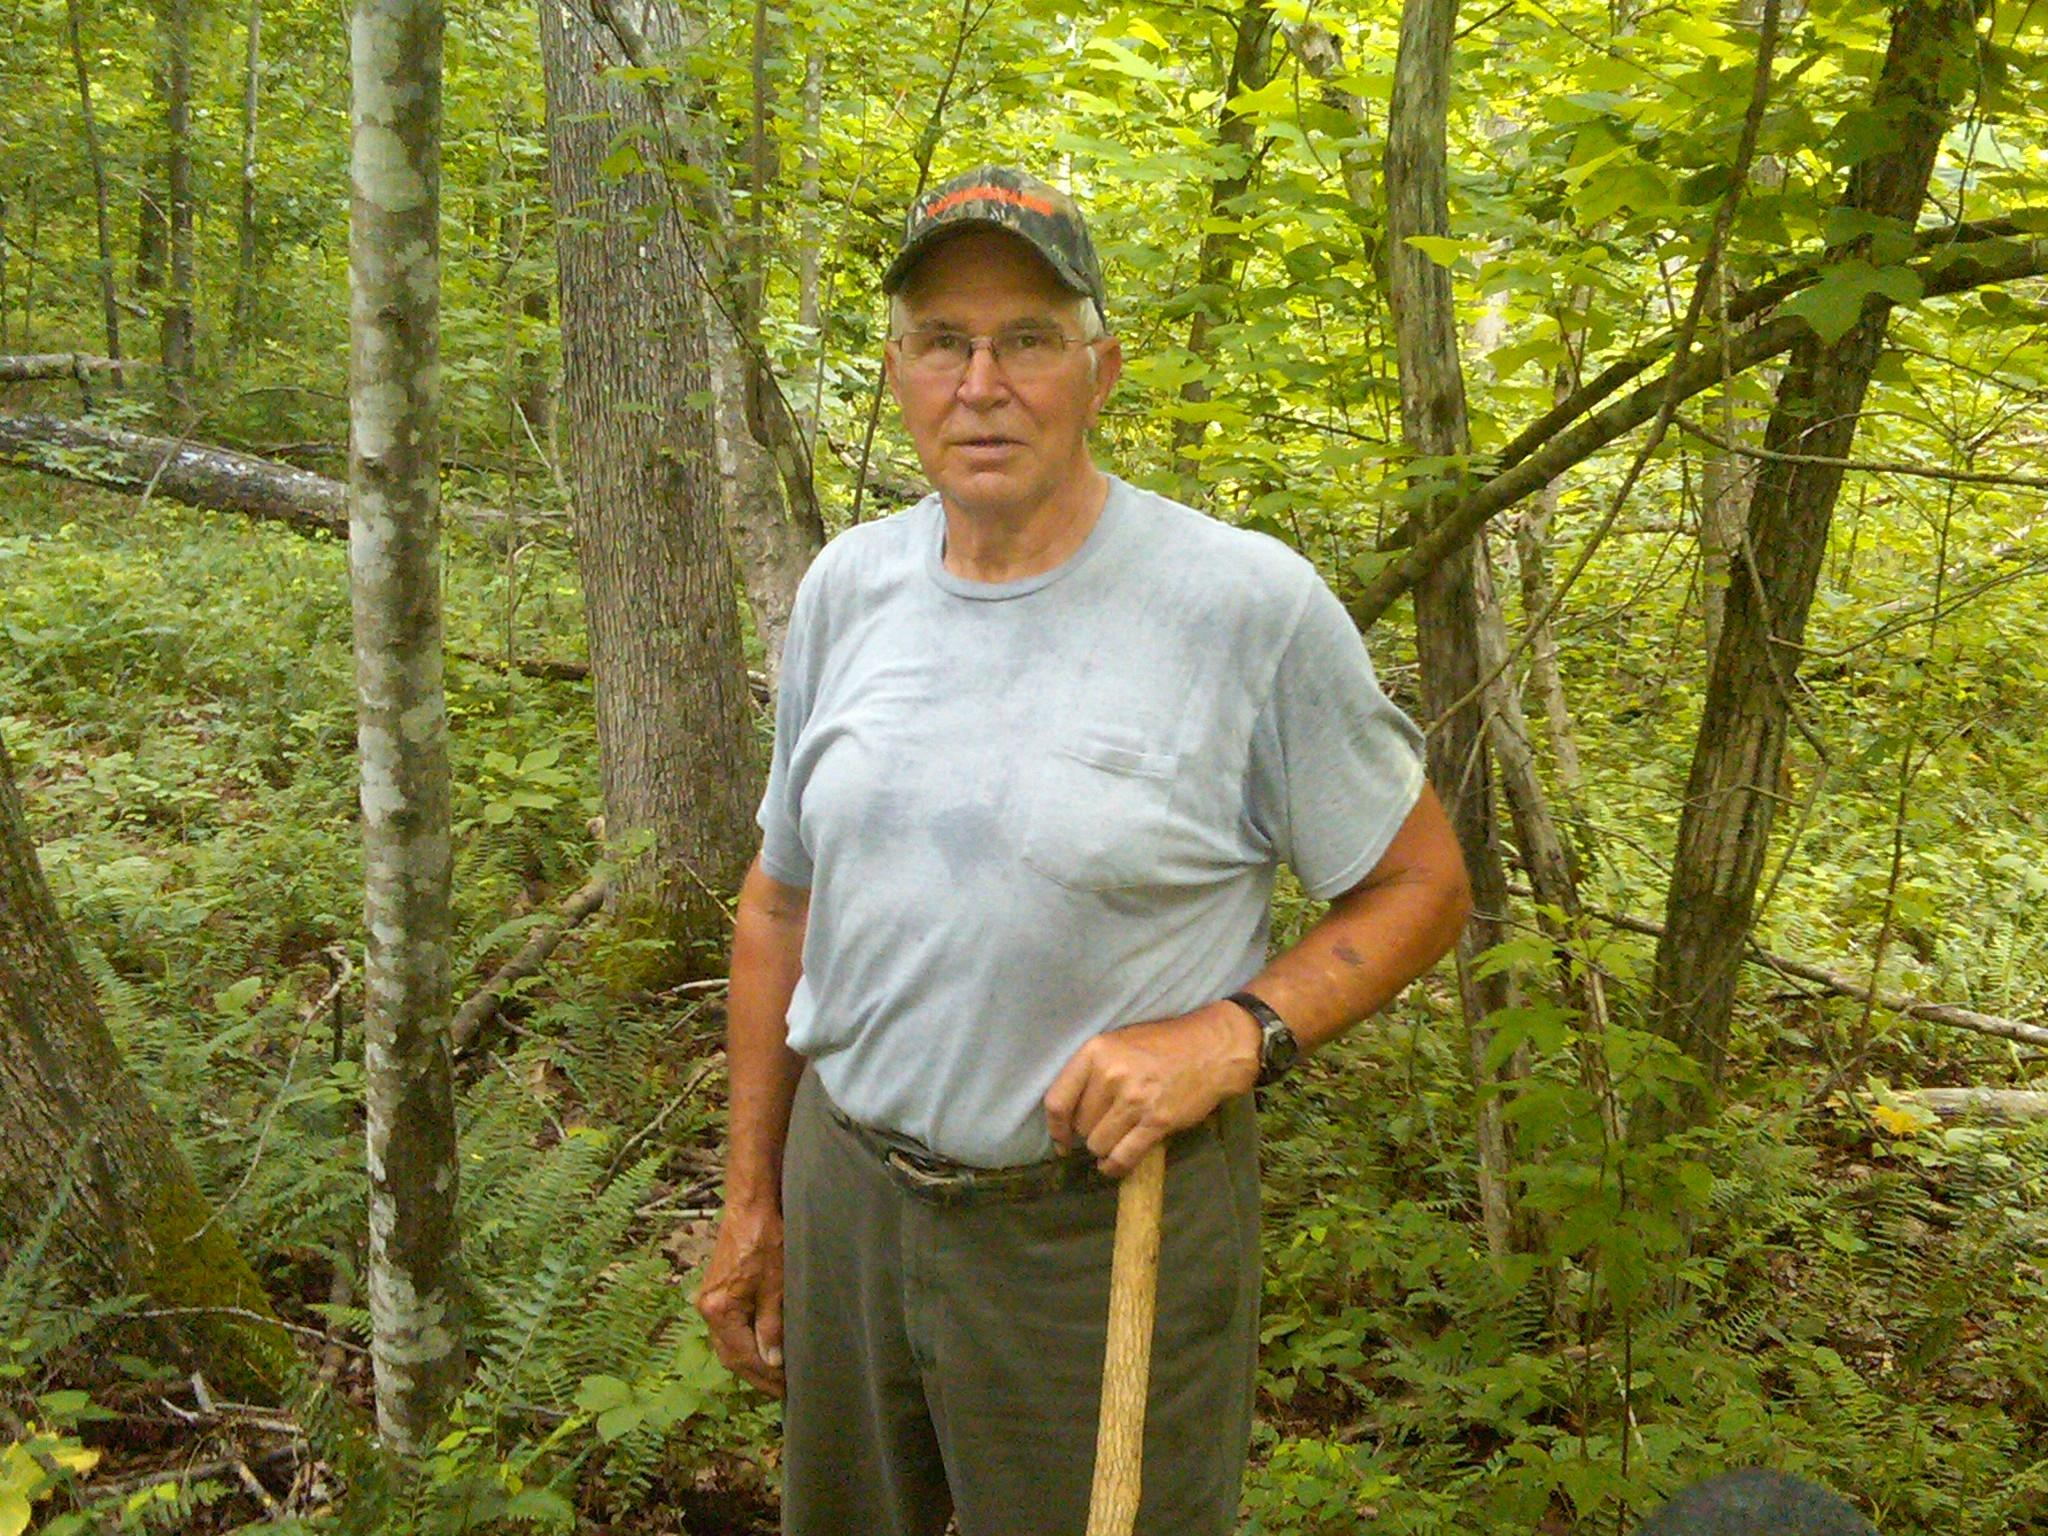 Kentucky's Wild Ginseng Threatened by Black Market | WKMS